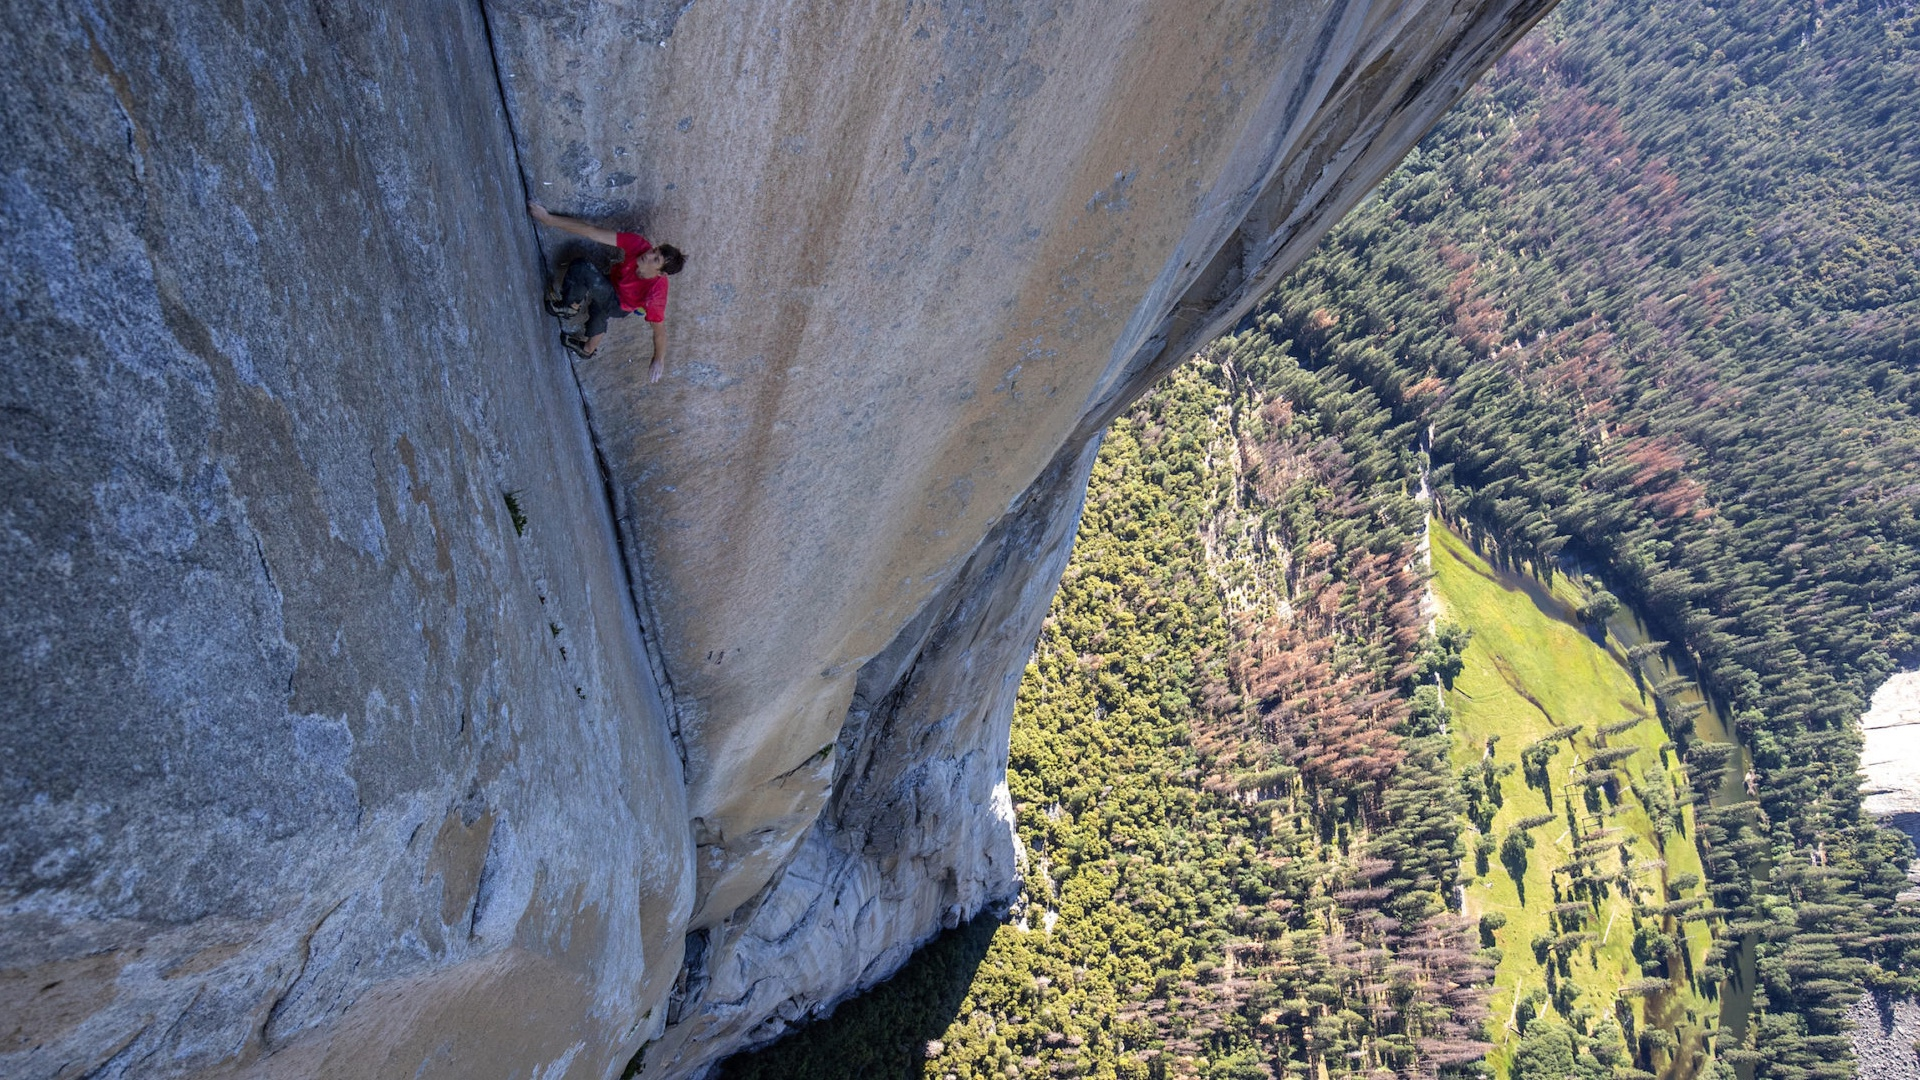 Free Solo,  photo by Jimmy Chin, courtesy of National Geographic